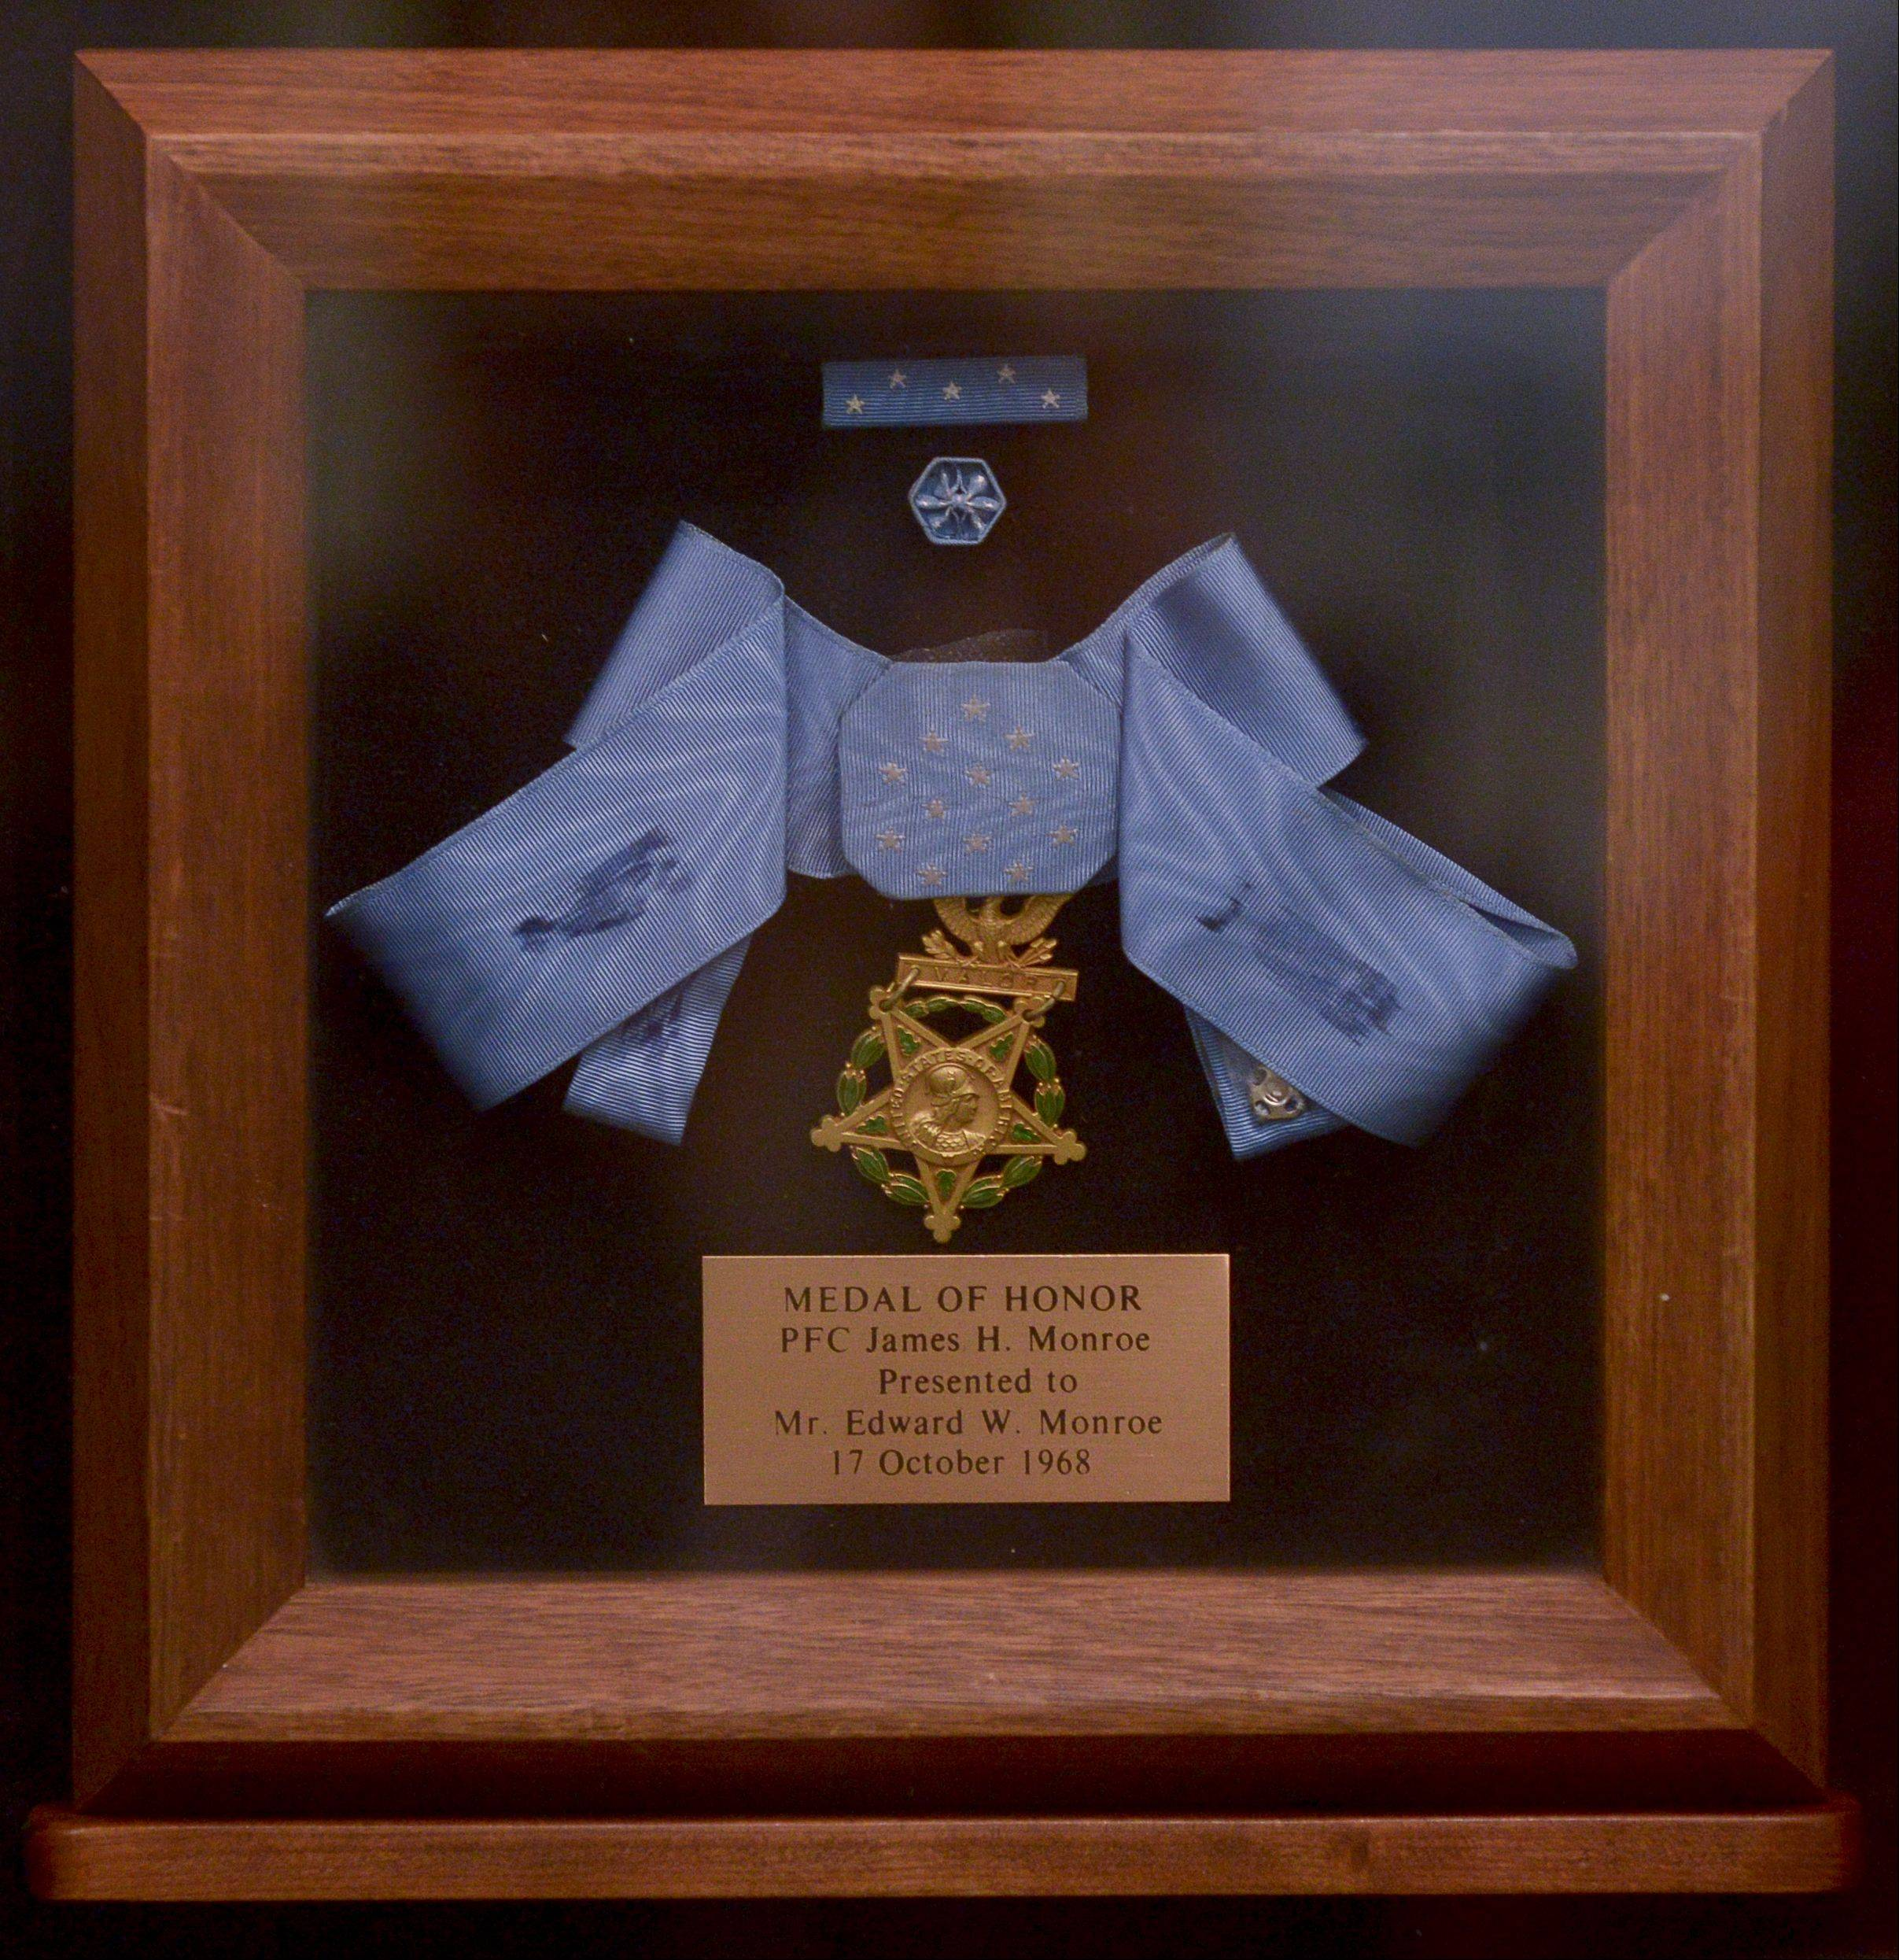 The Medal of Honor presented to Wheaton's James Howard Monroe, who died in Vietnam while saving the lives of two fellow soldiers.